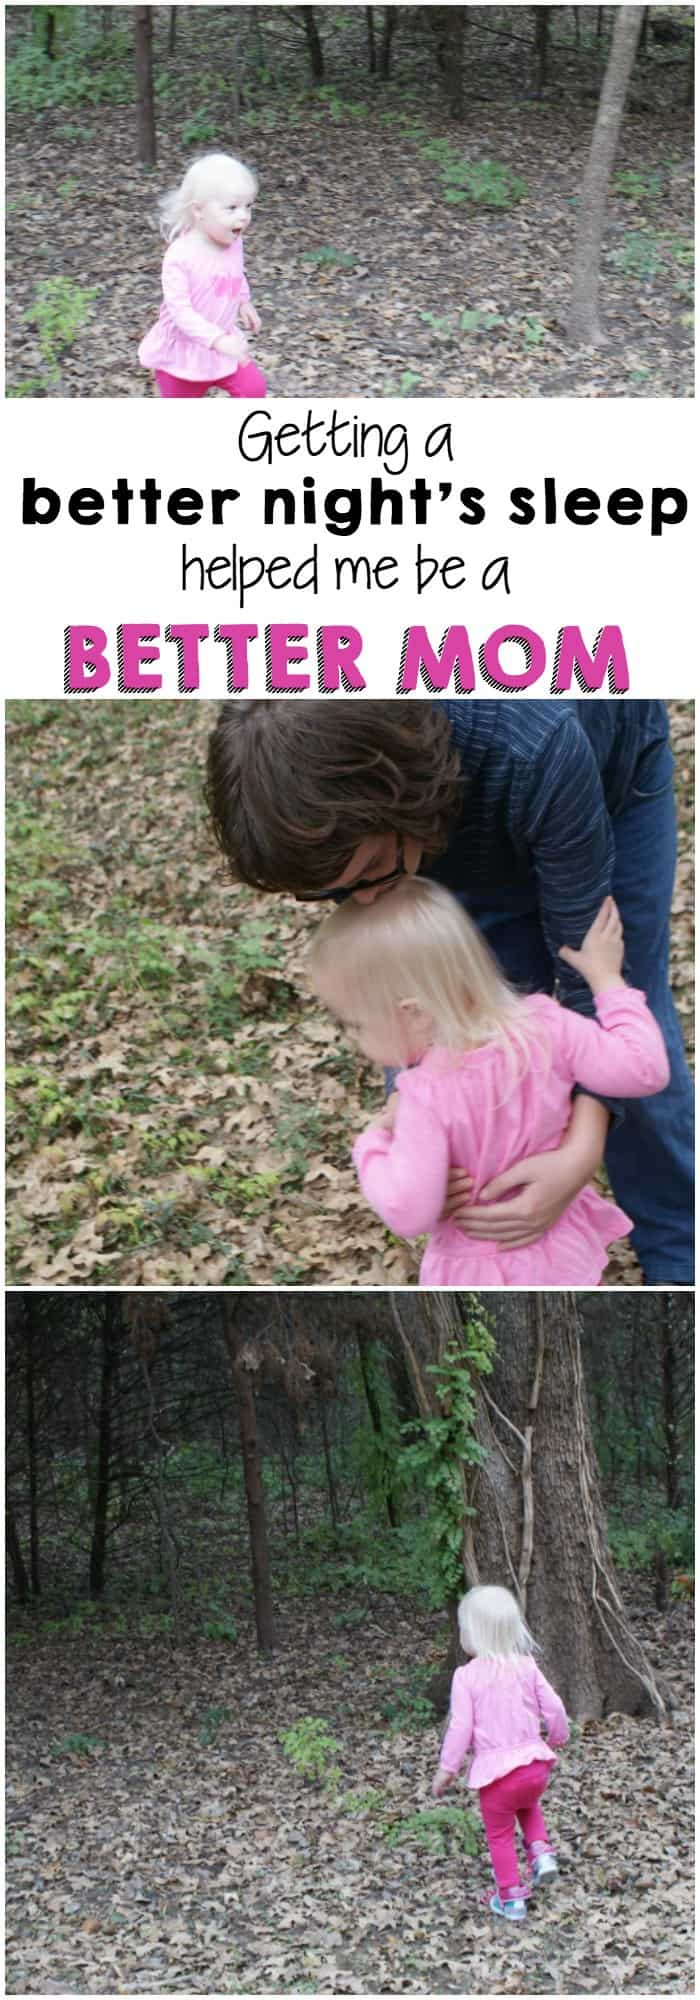 I was just falling apart. I needed some sleep and these tips helped me get a better night's rest so I could be a better mom.